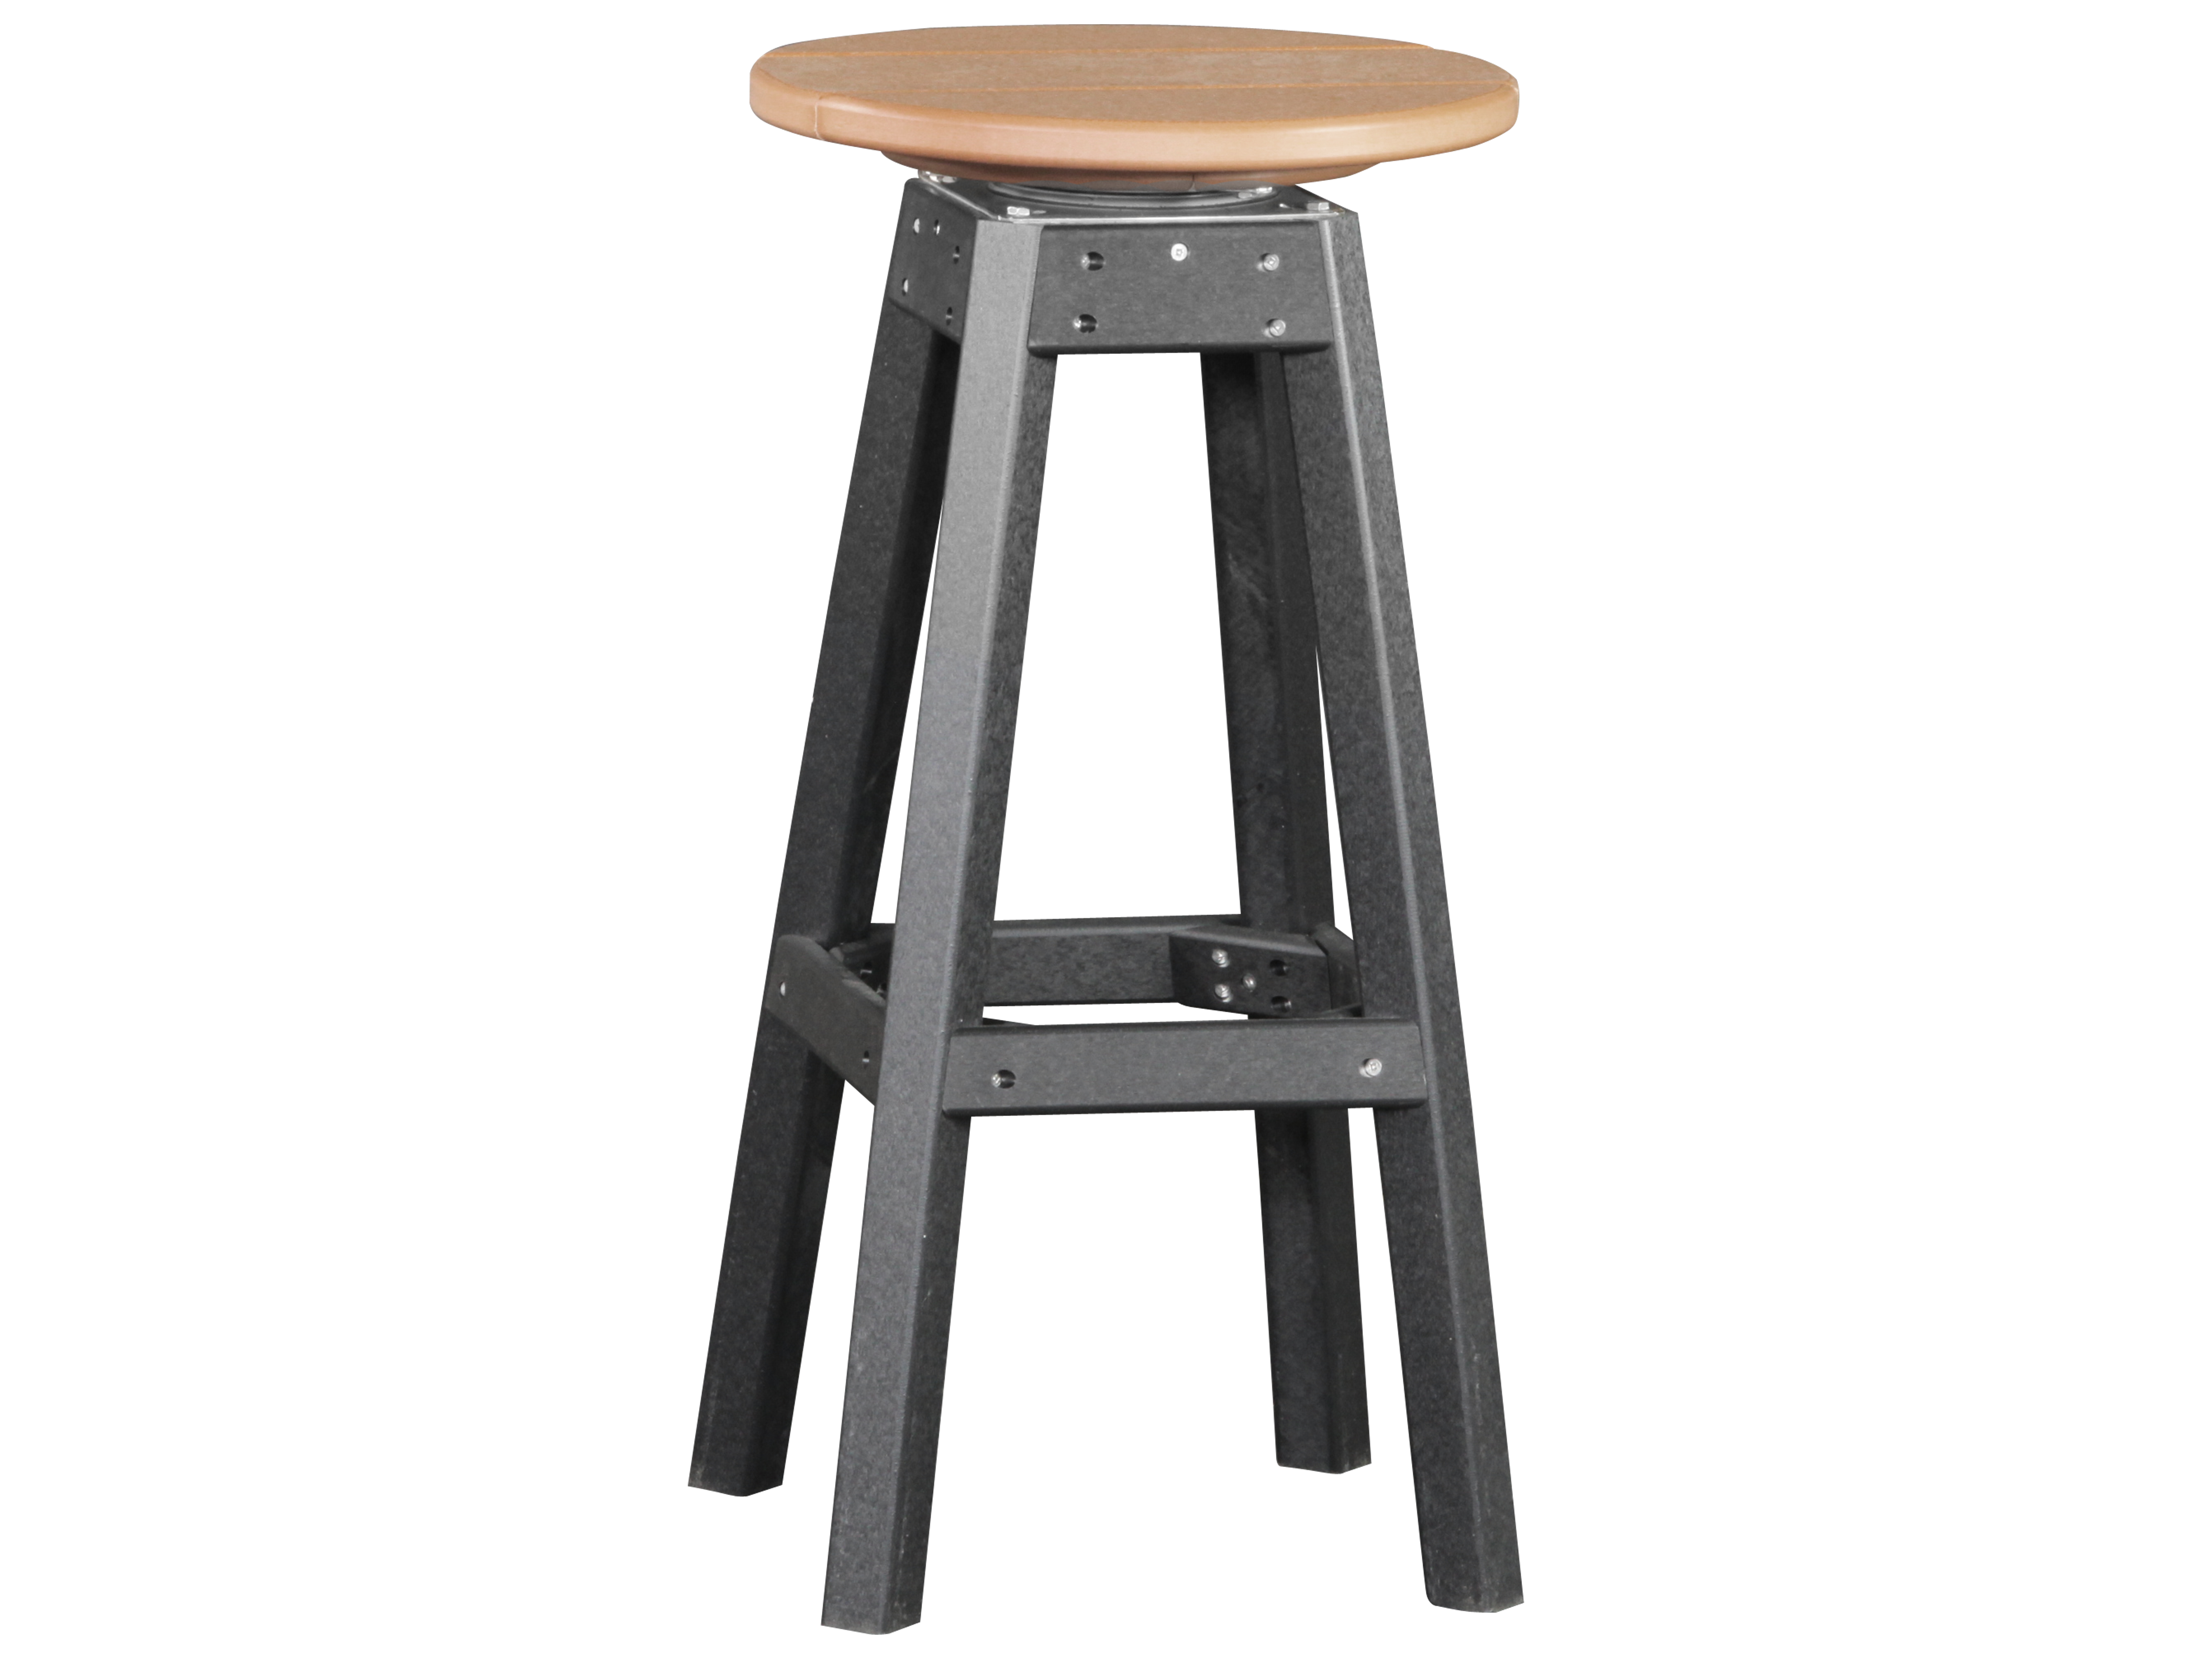 LuxCraft Recycled Plastic Bar Stool PBS BAR : LUXPBSBAR5zm from www.patioliving.com size 1159 x 869 jpeg 162kB